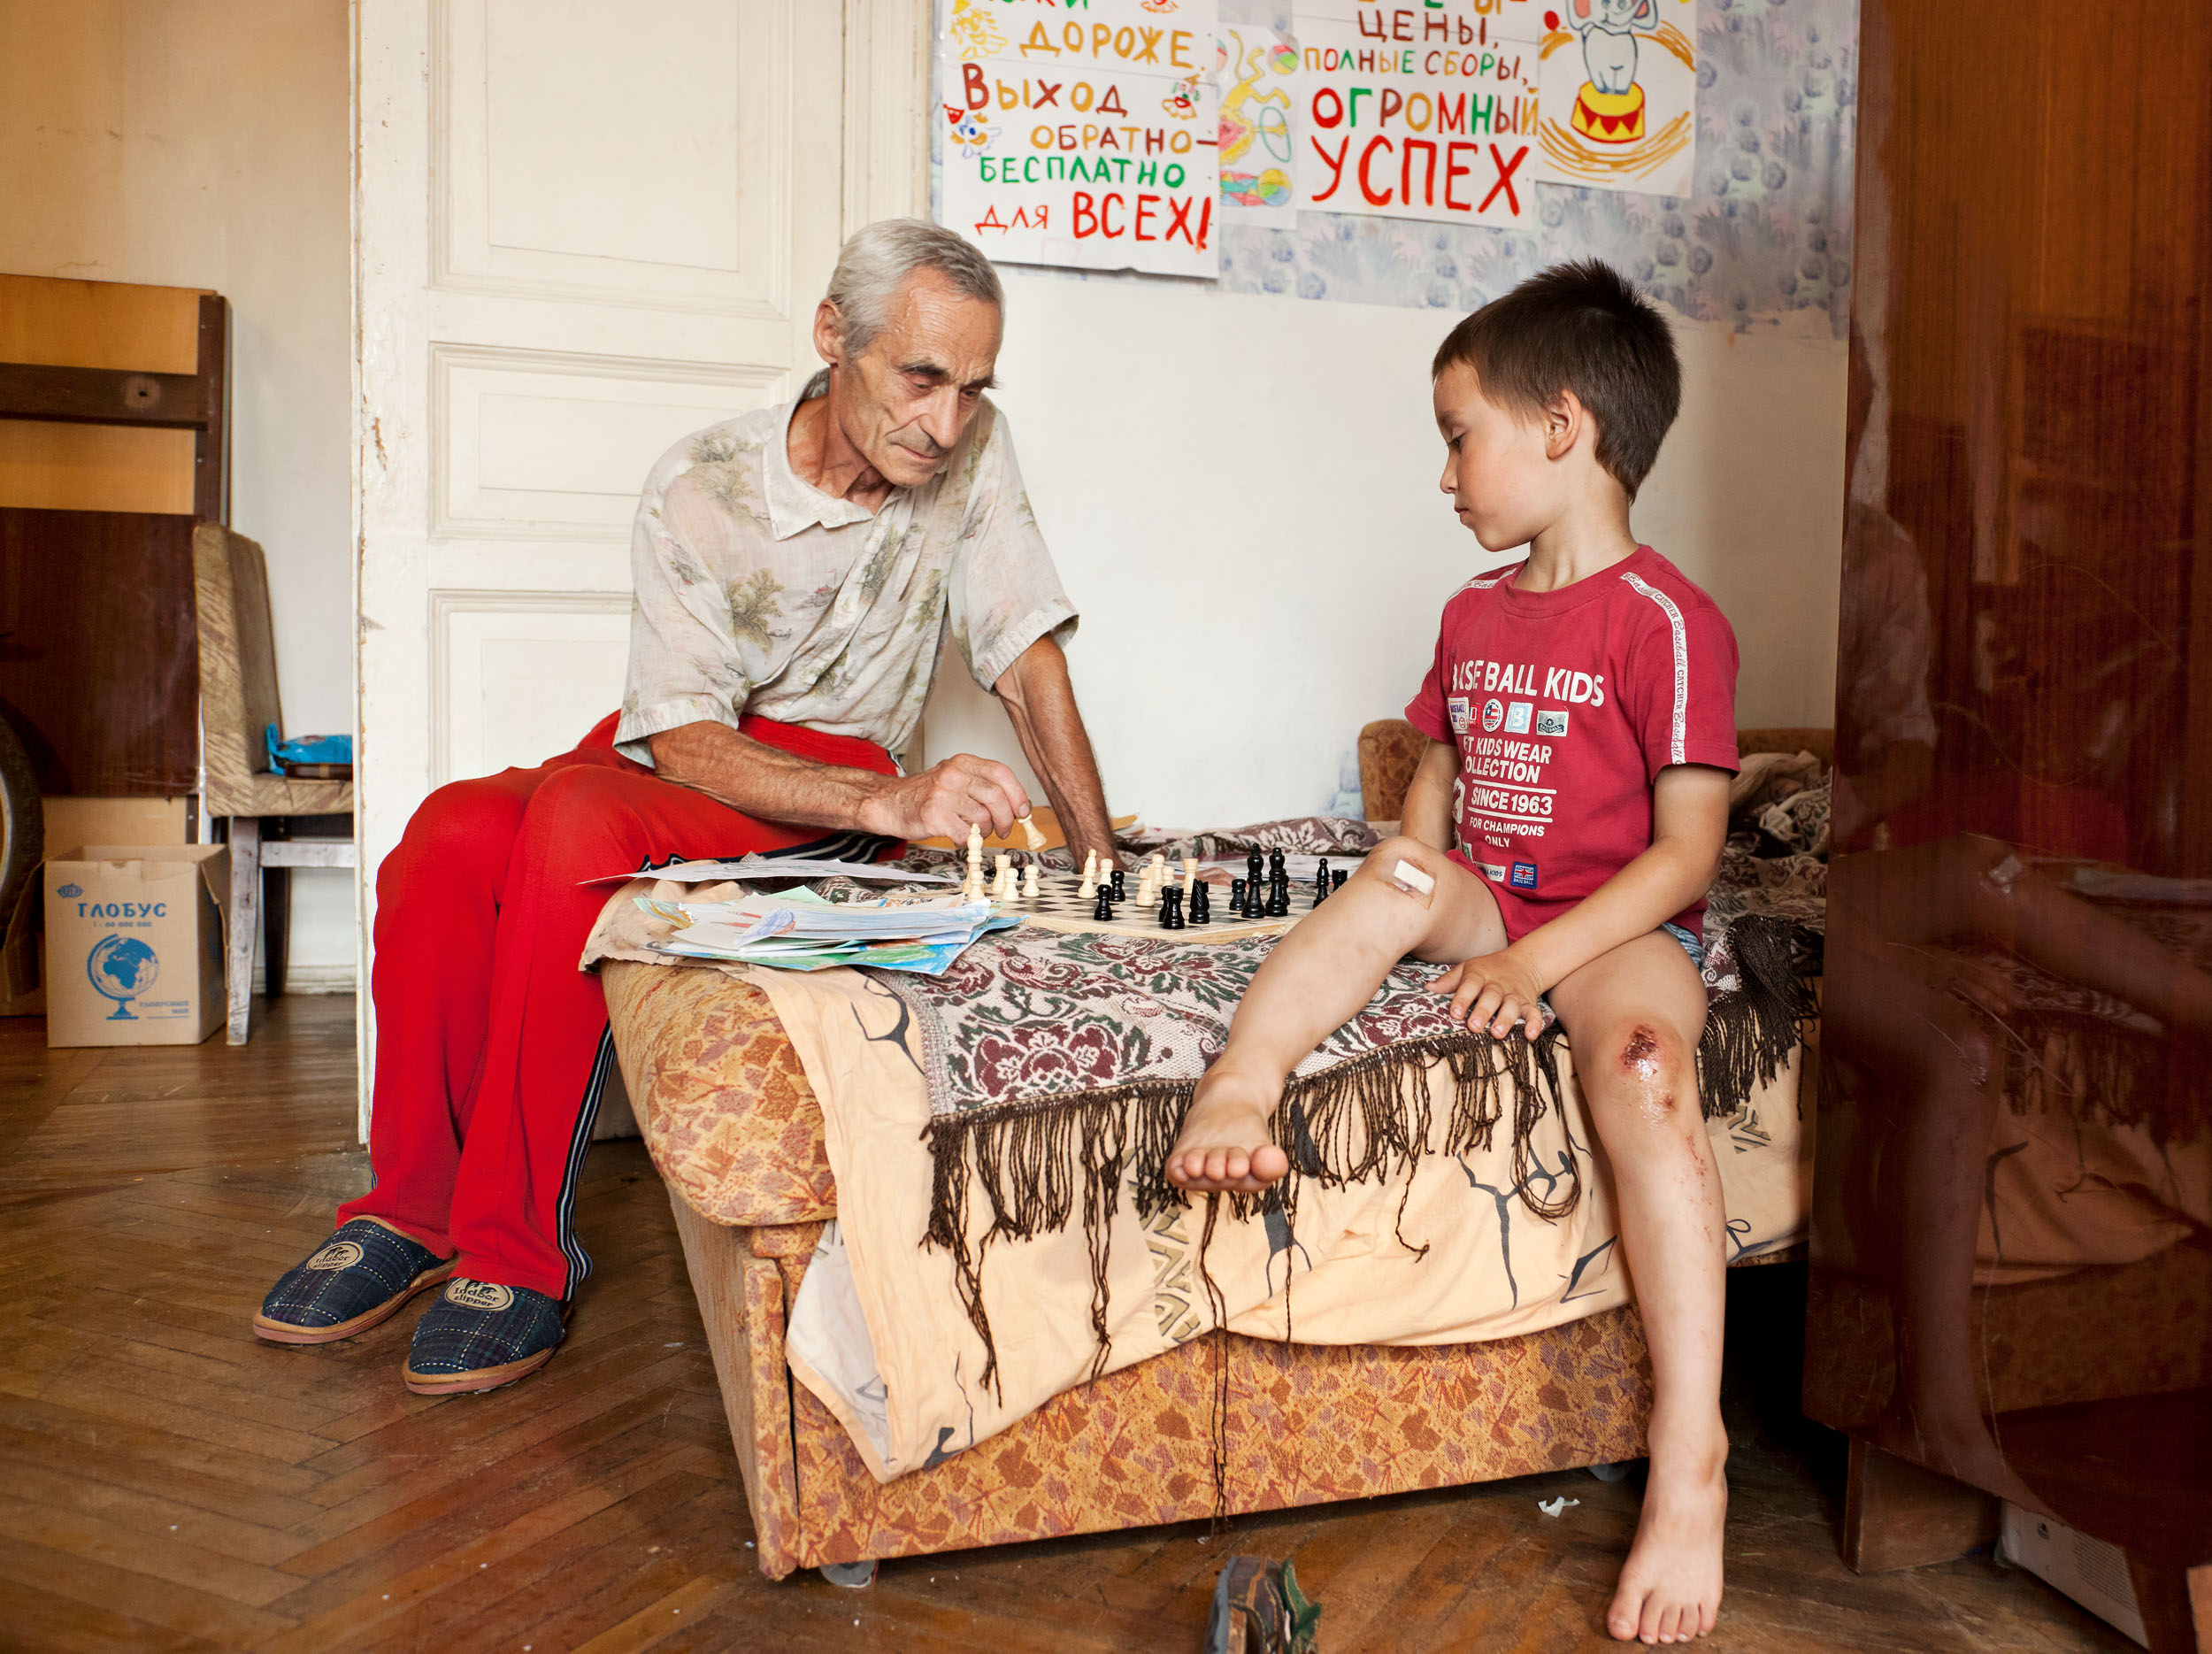 Chess with Grandson  2011, archival pigment print 100 x 134 cm / 39.5 x 53 in. Edition of 5